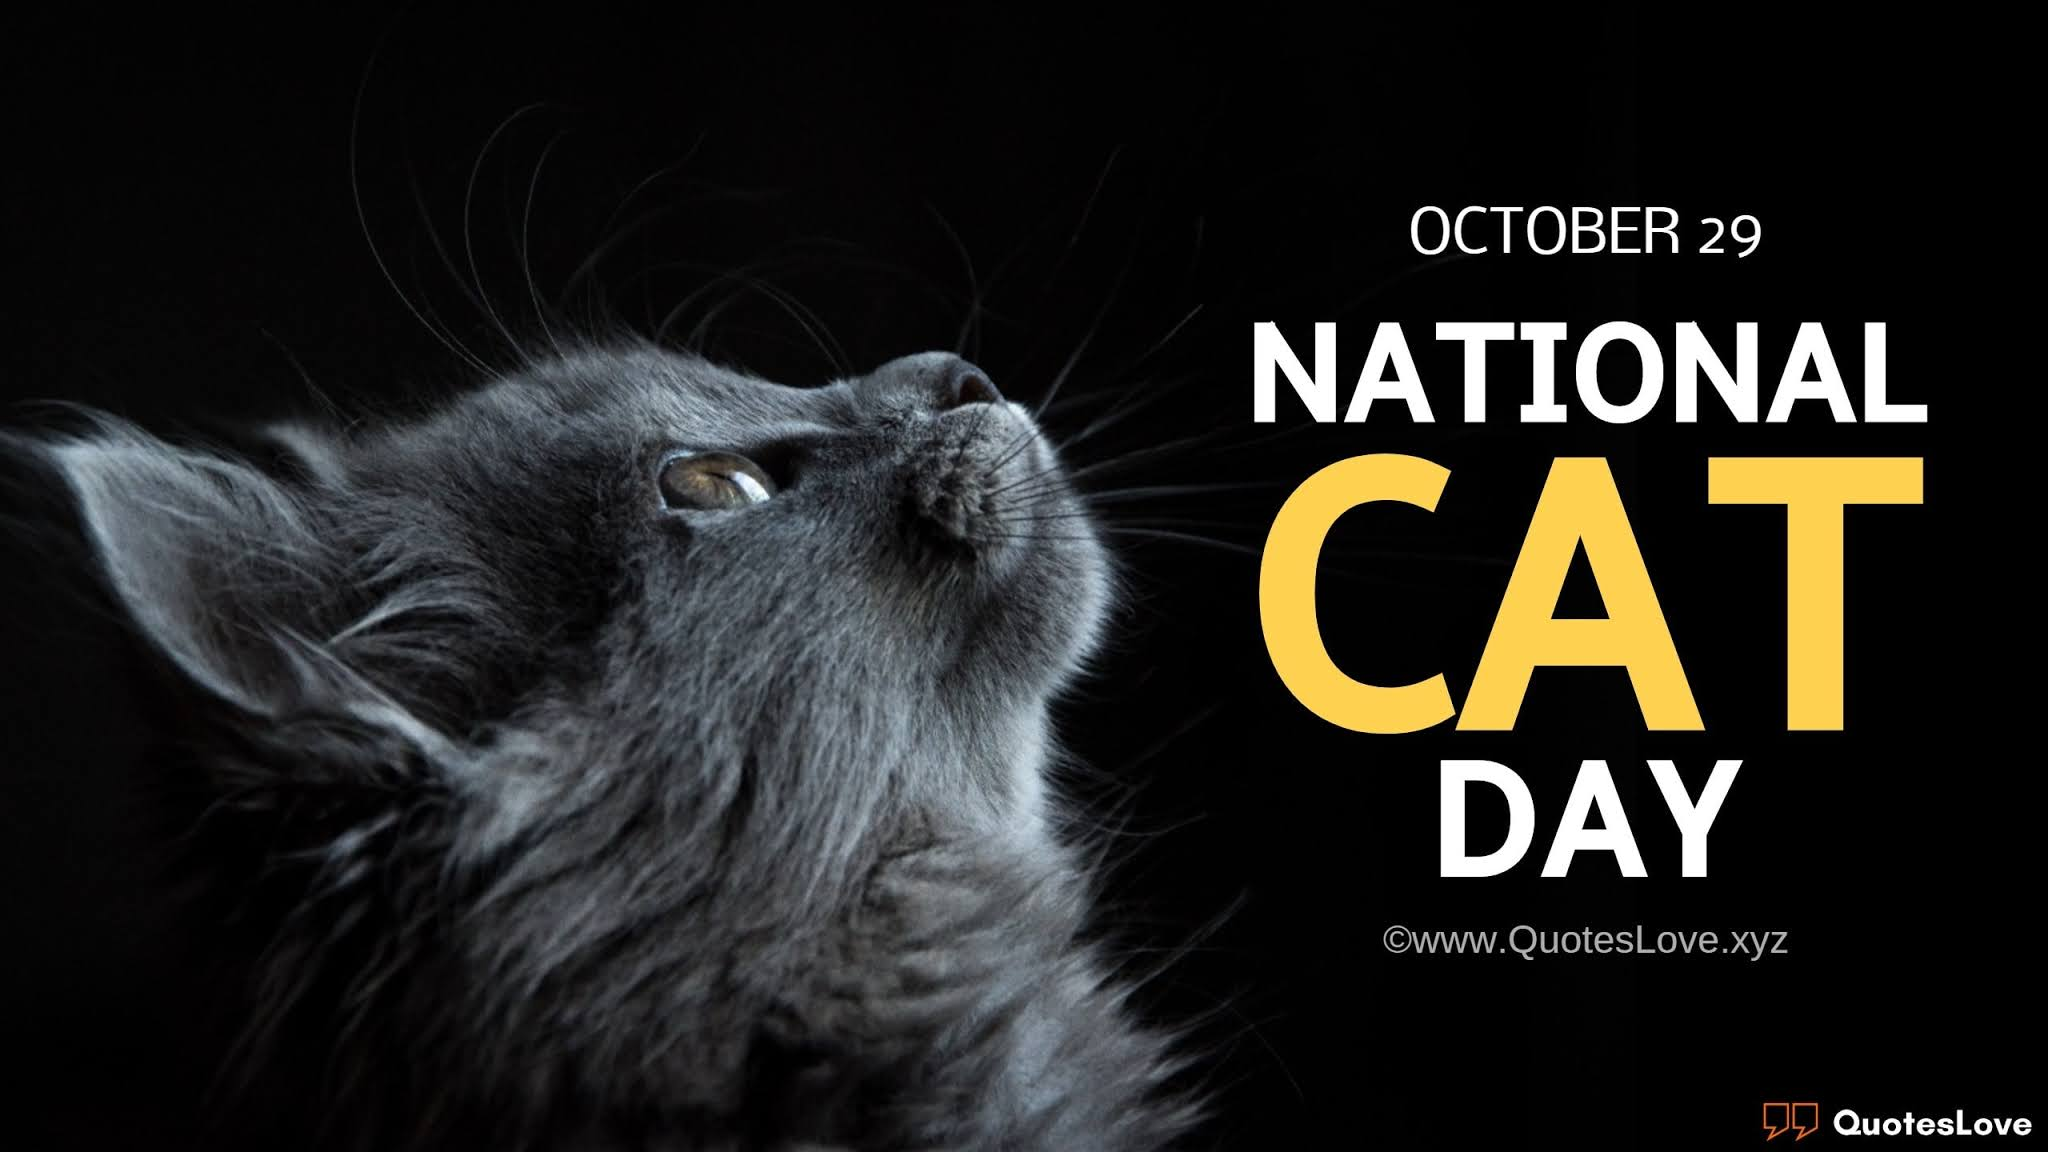 National Cat Day Quotes, Sayings, Messages, Images, Poster, Photos, Pictures